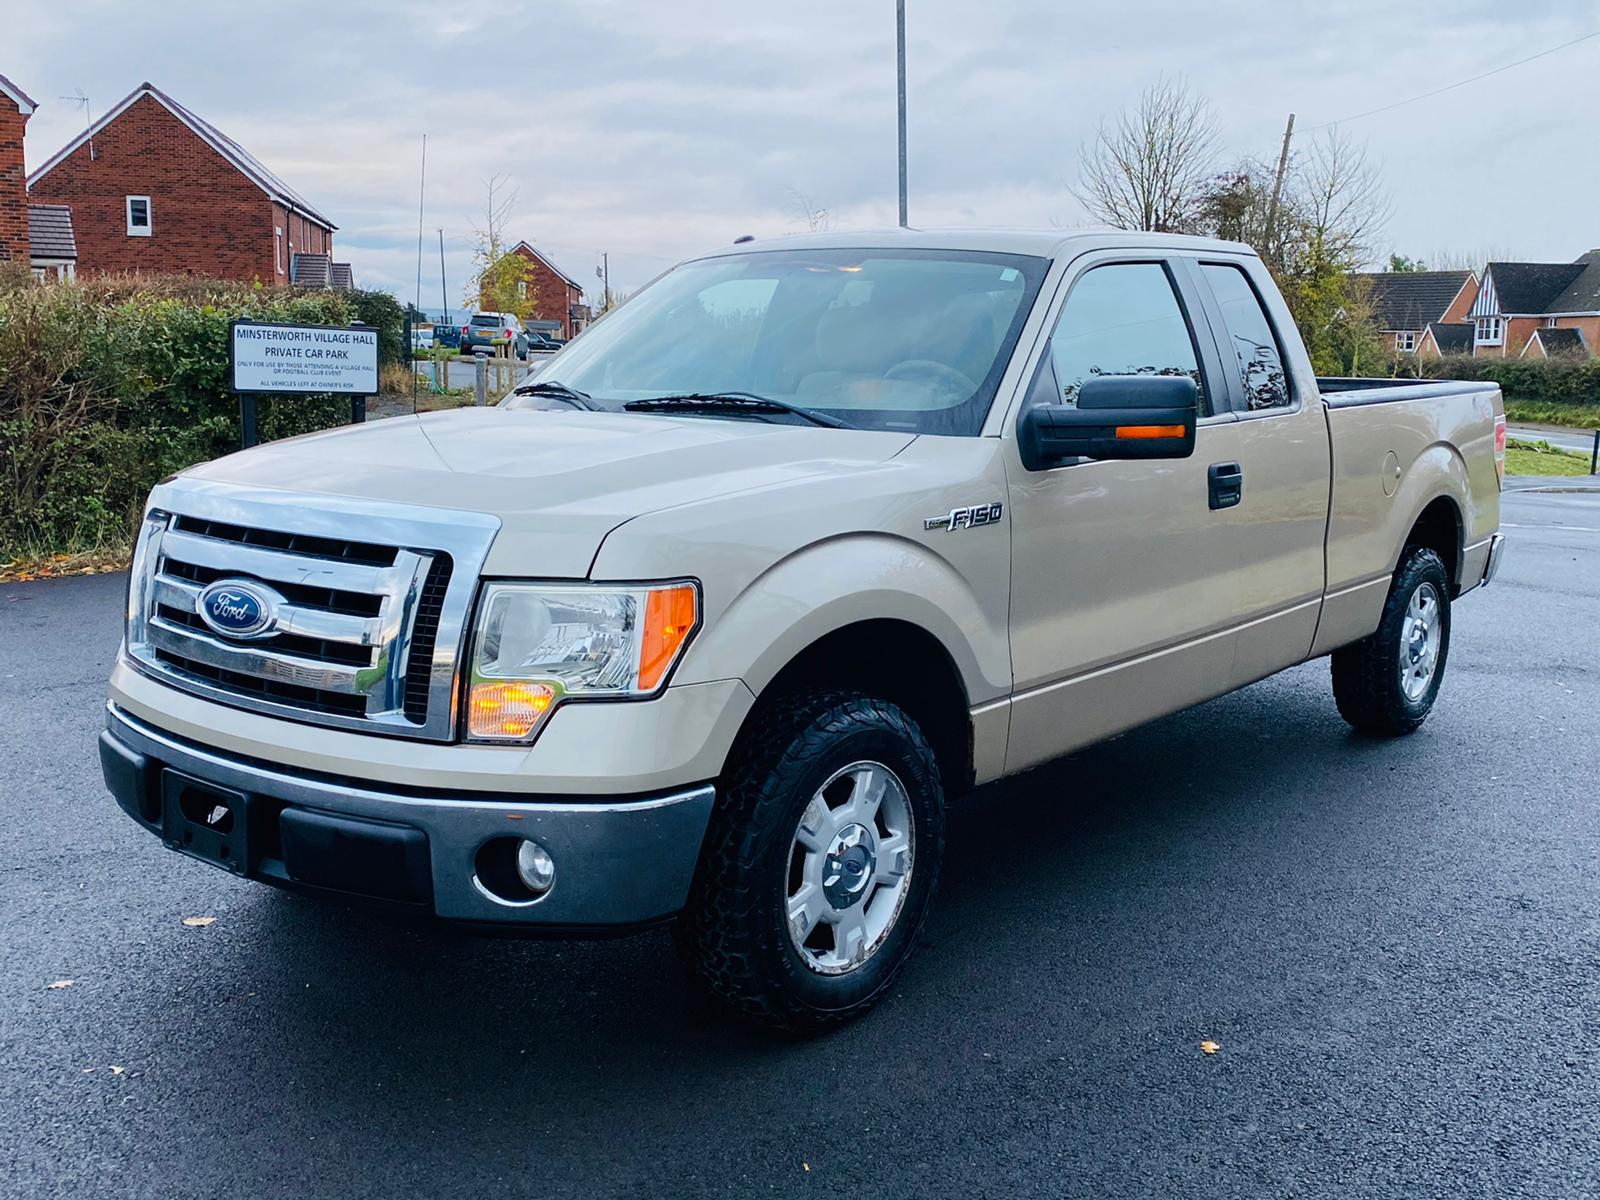 (RESERVE MET) Ford F-150 XLT 4.6L V8 Supercab - 2010 Year - 6 Seats - Fresh Imports - Image 3 of 39